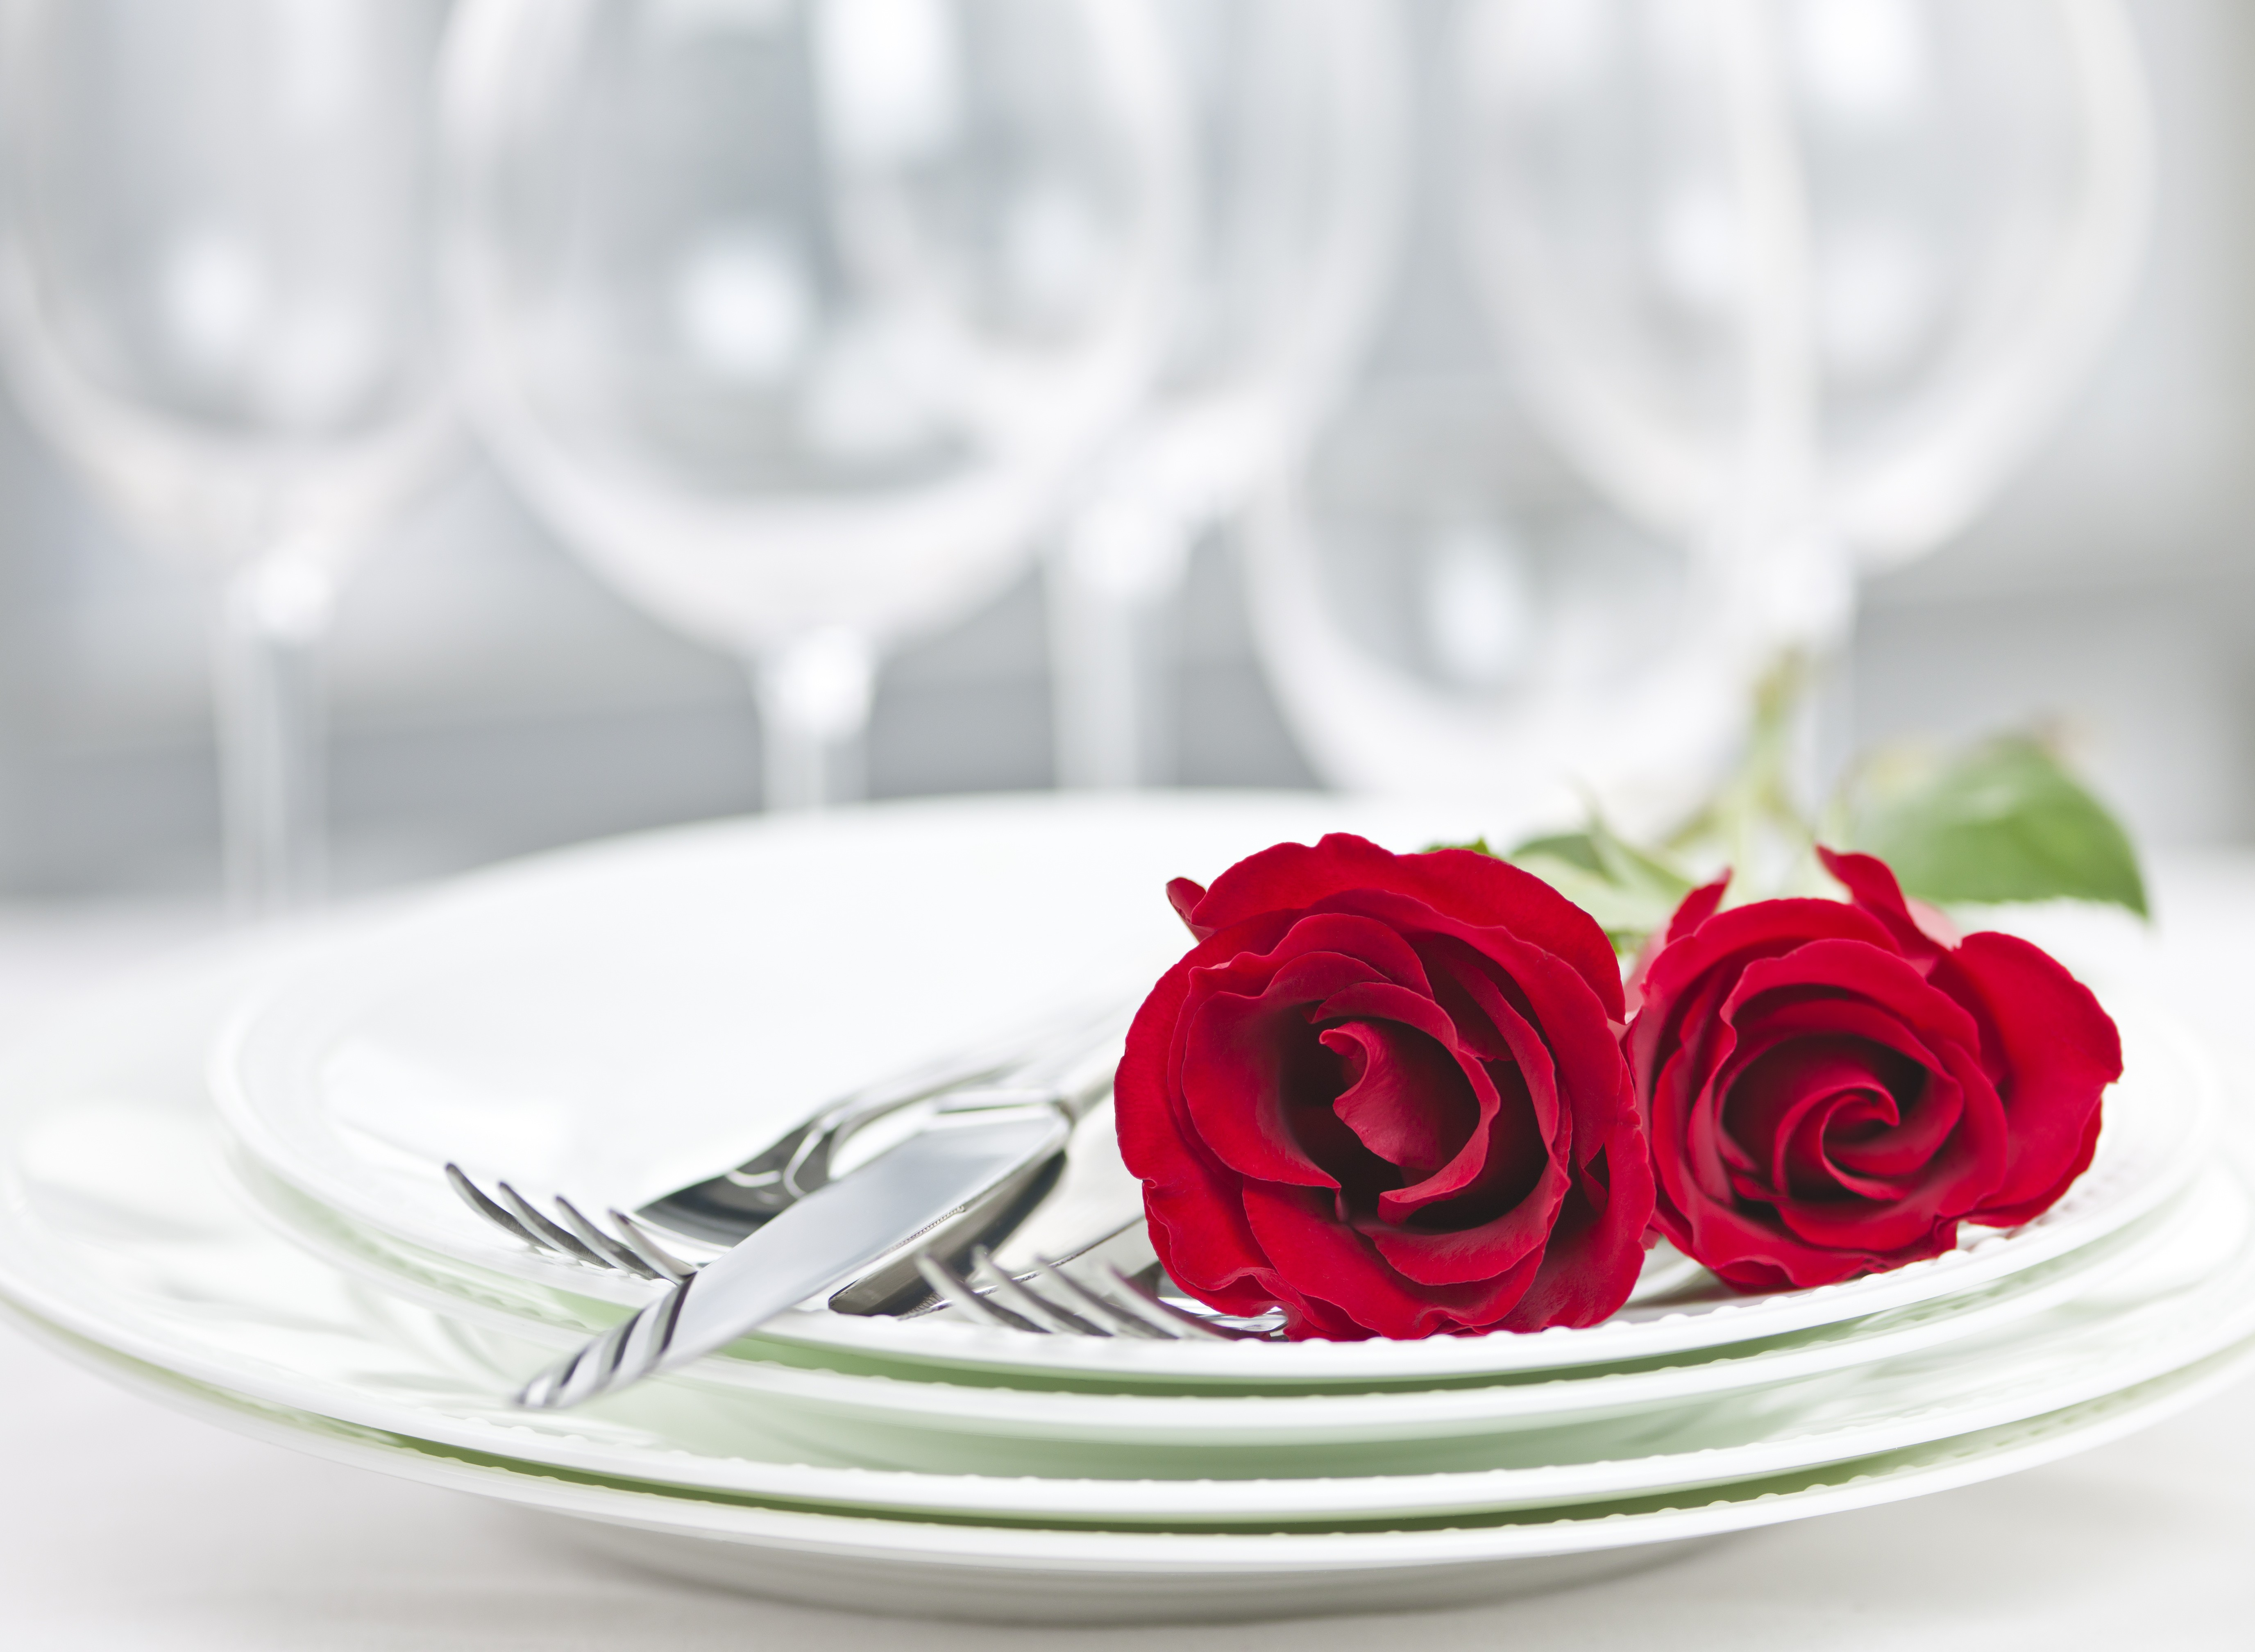 romantic dinner wallpaper for - photo #19